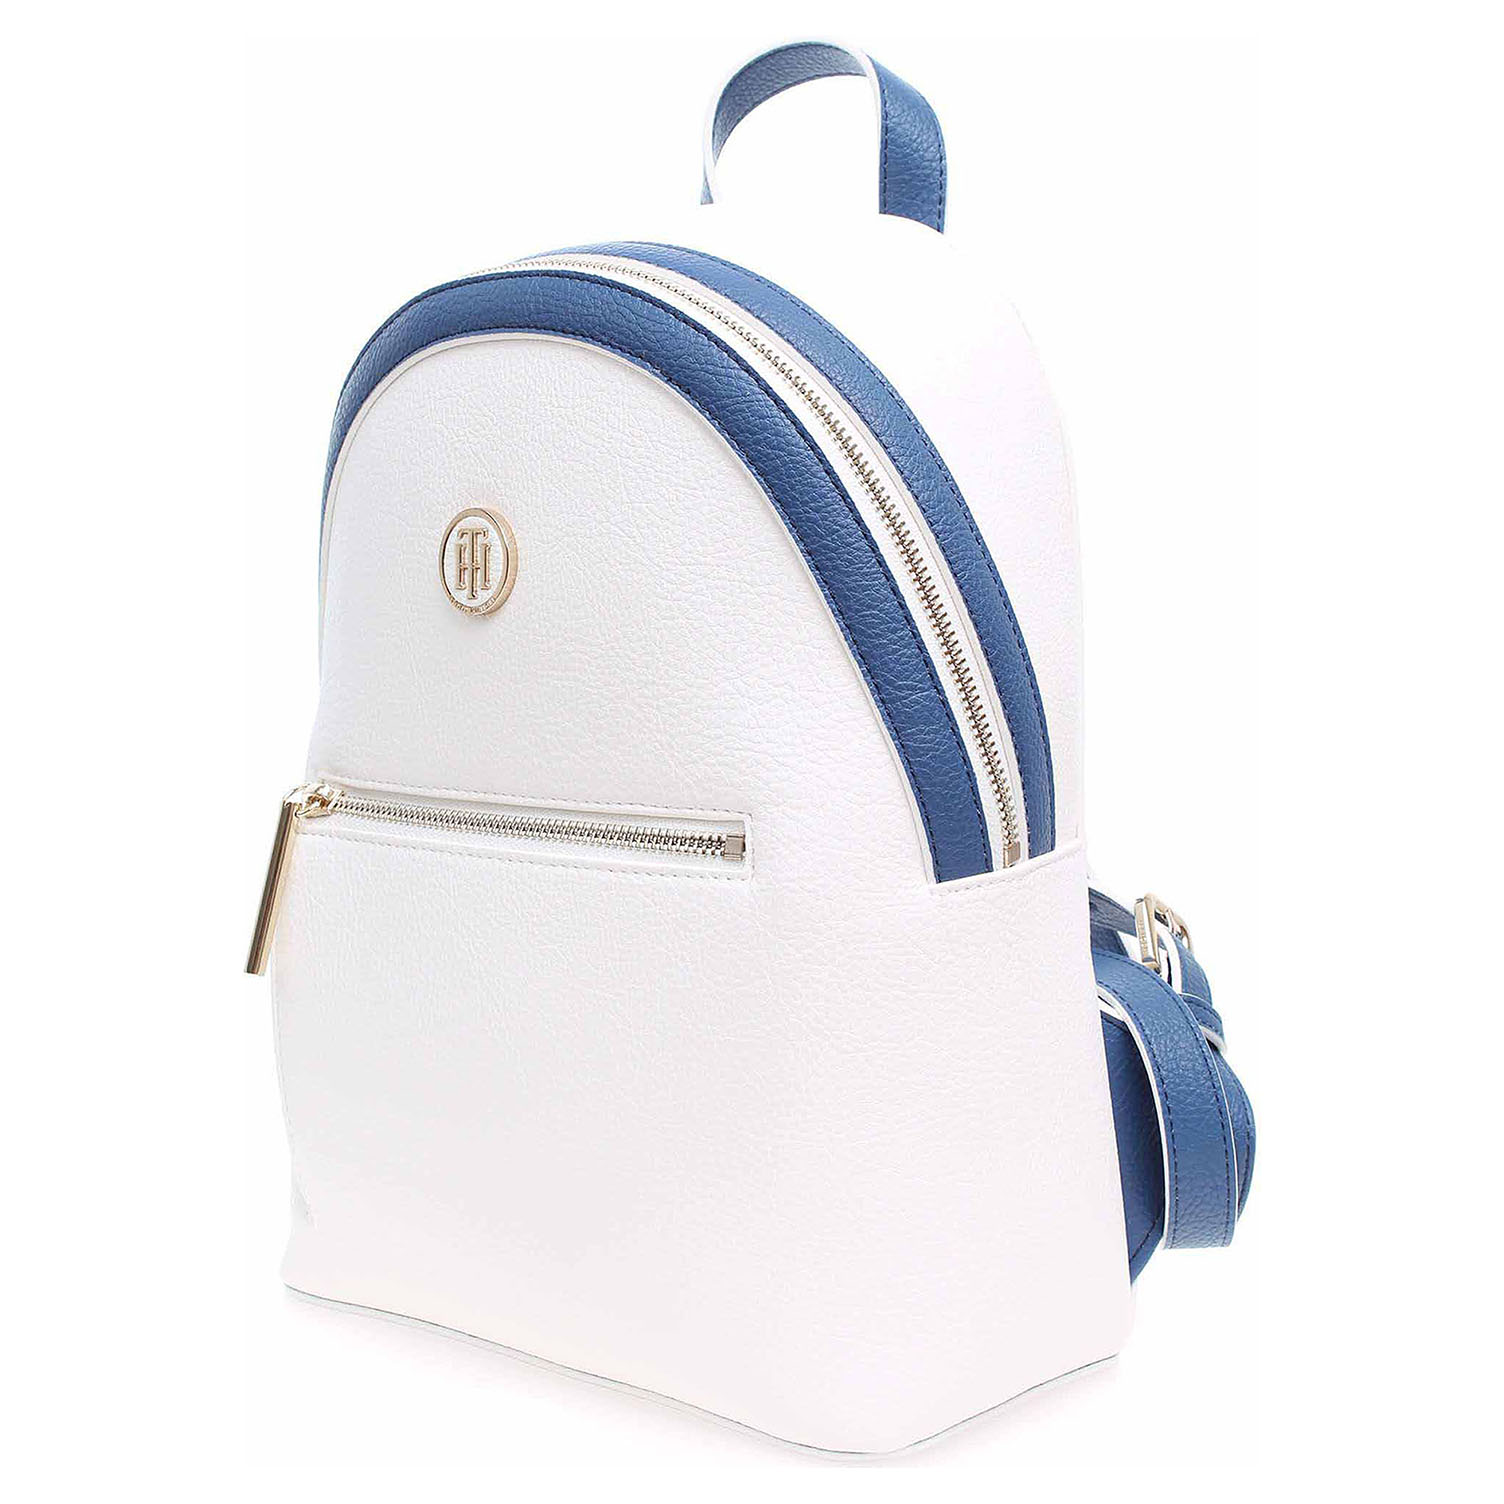 Tommy Hilfiger dámský batůžek AW0AW05122 902 bright white-dutch blue